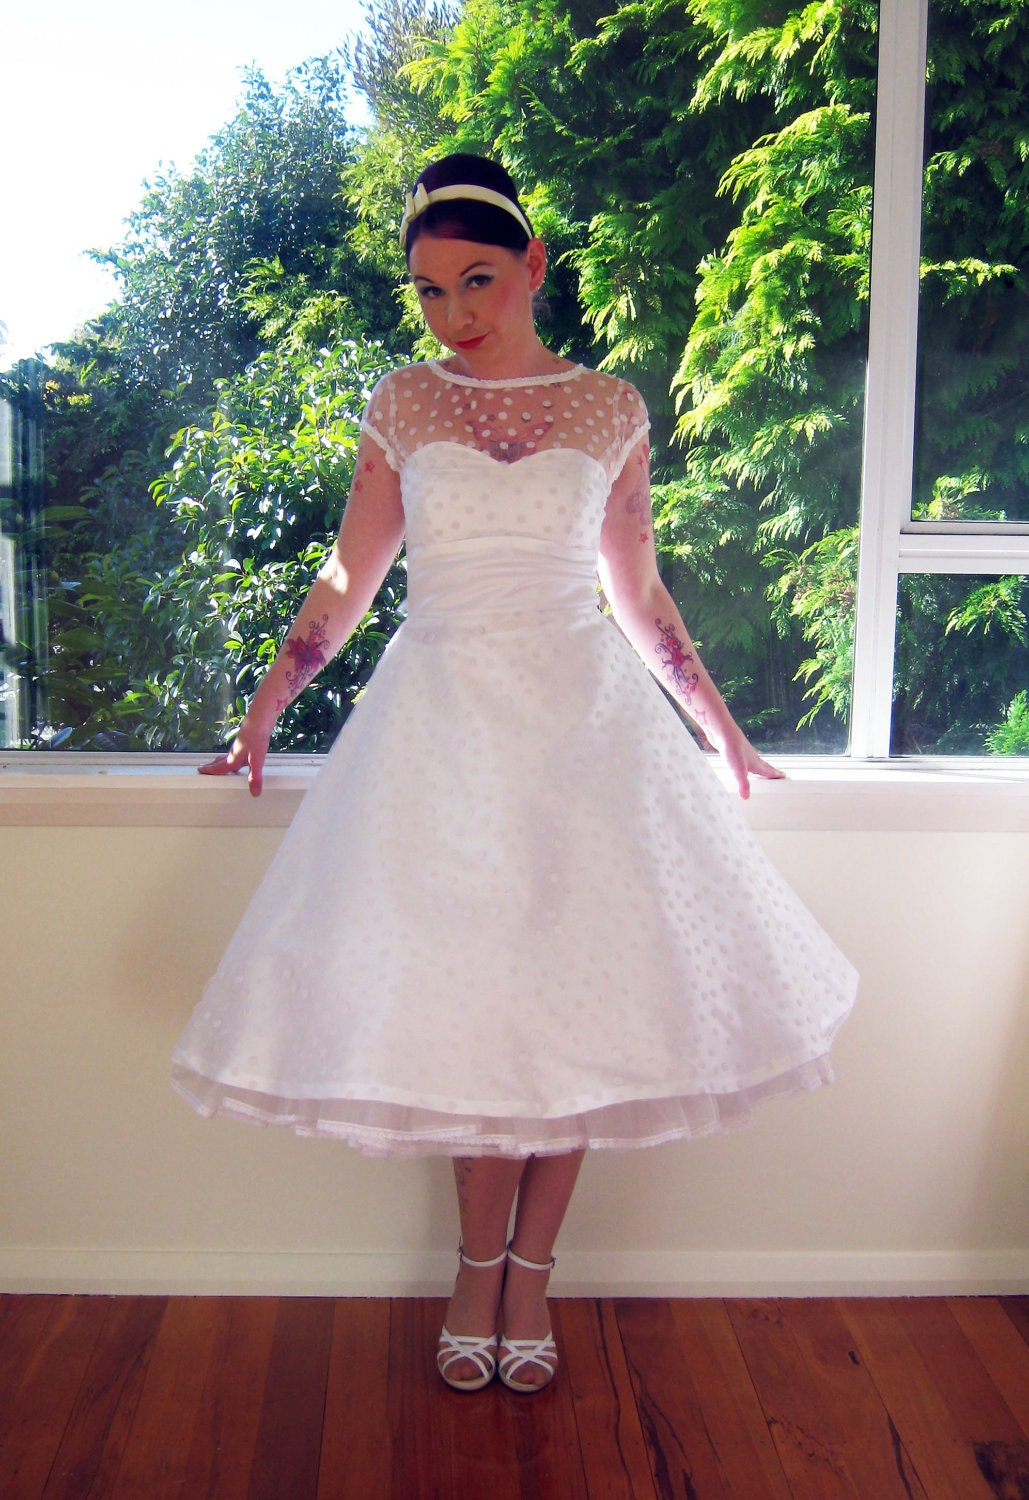 1950 39 s style white wedding dress with polka dot overlay for Wedding dresses 1950s style